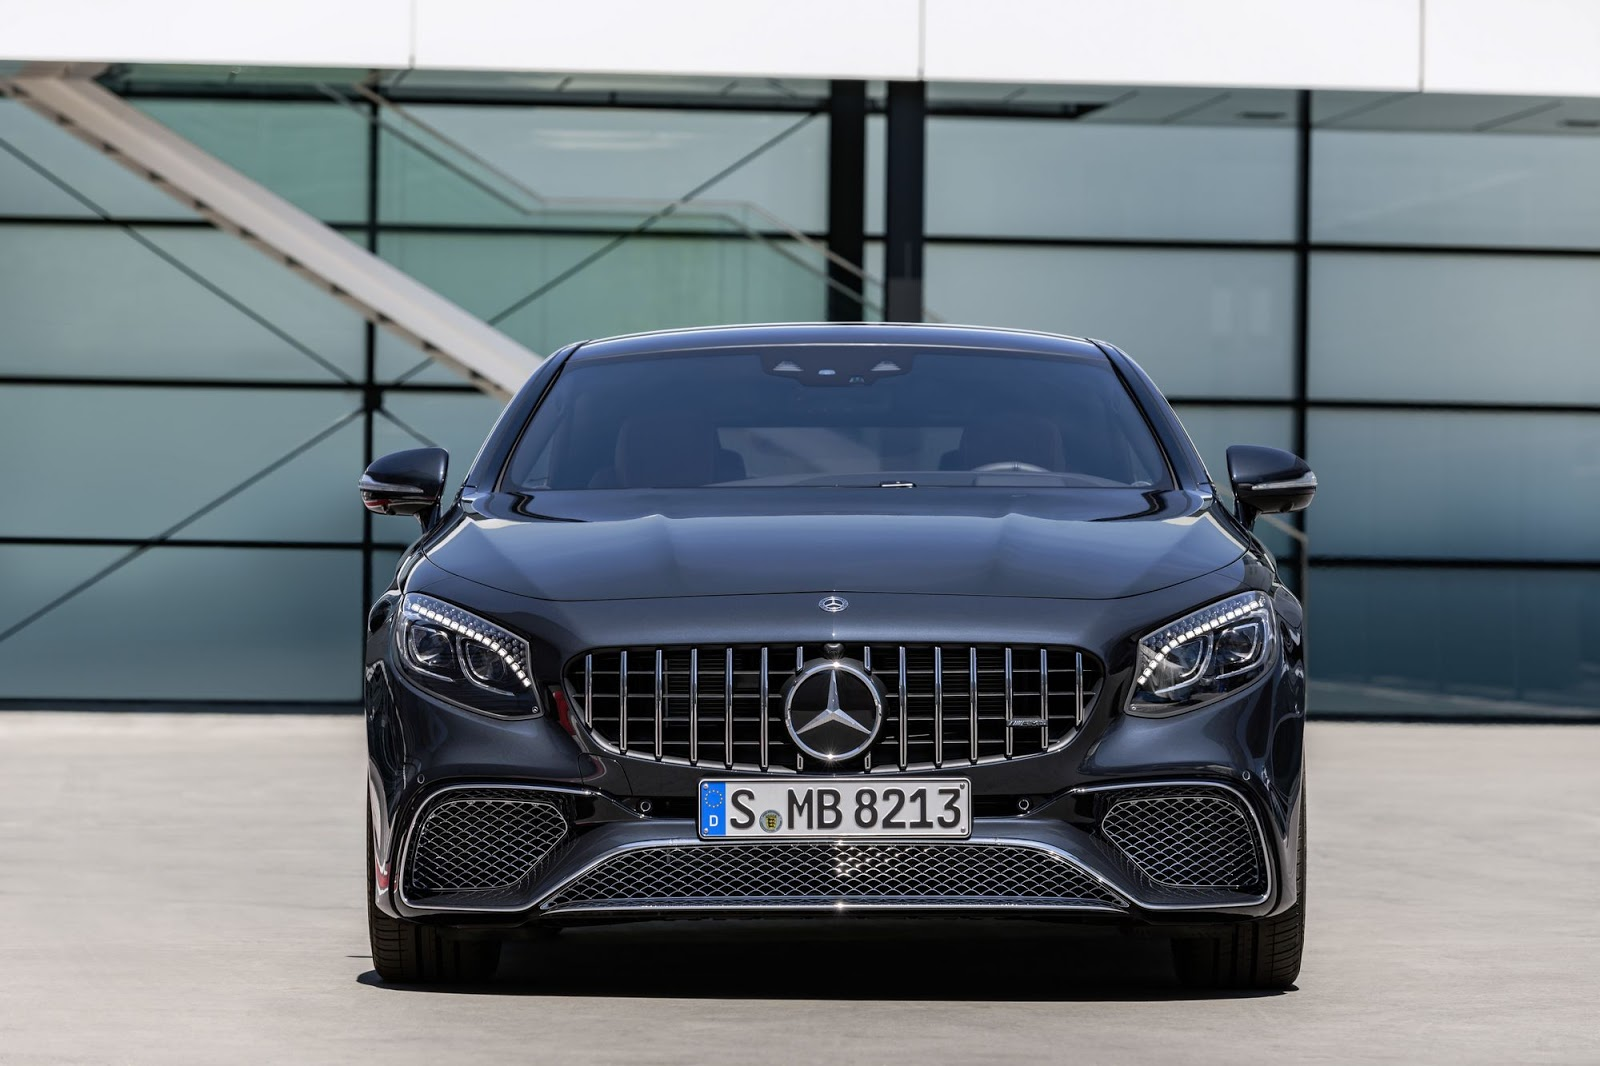 https://www.zero2turbo.com/wp-content/uploads/2017/09/2018-Mercedes-AMG-S63-S65-Coupe-Cabriolet-44.jpg